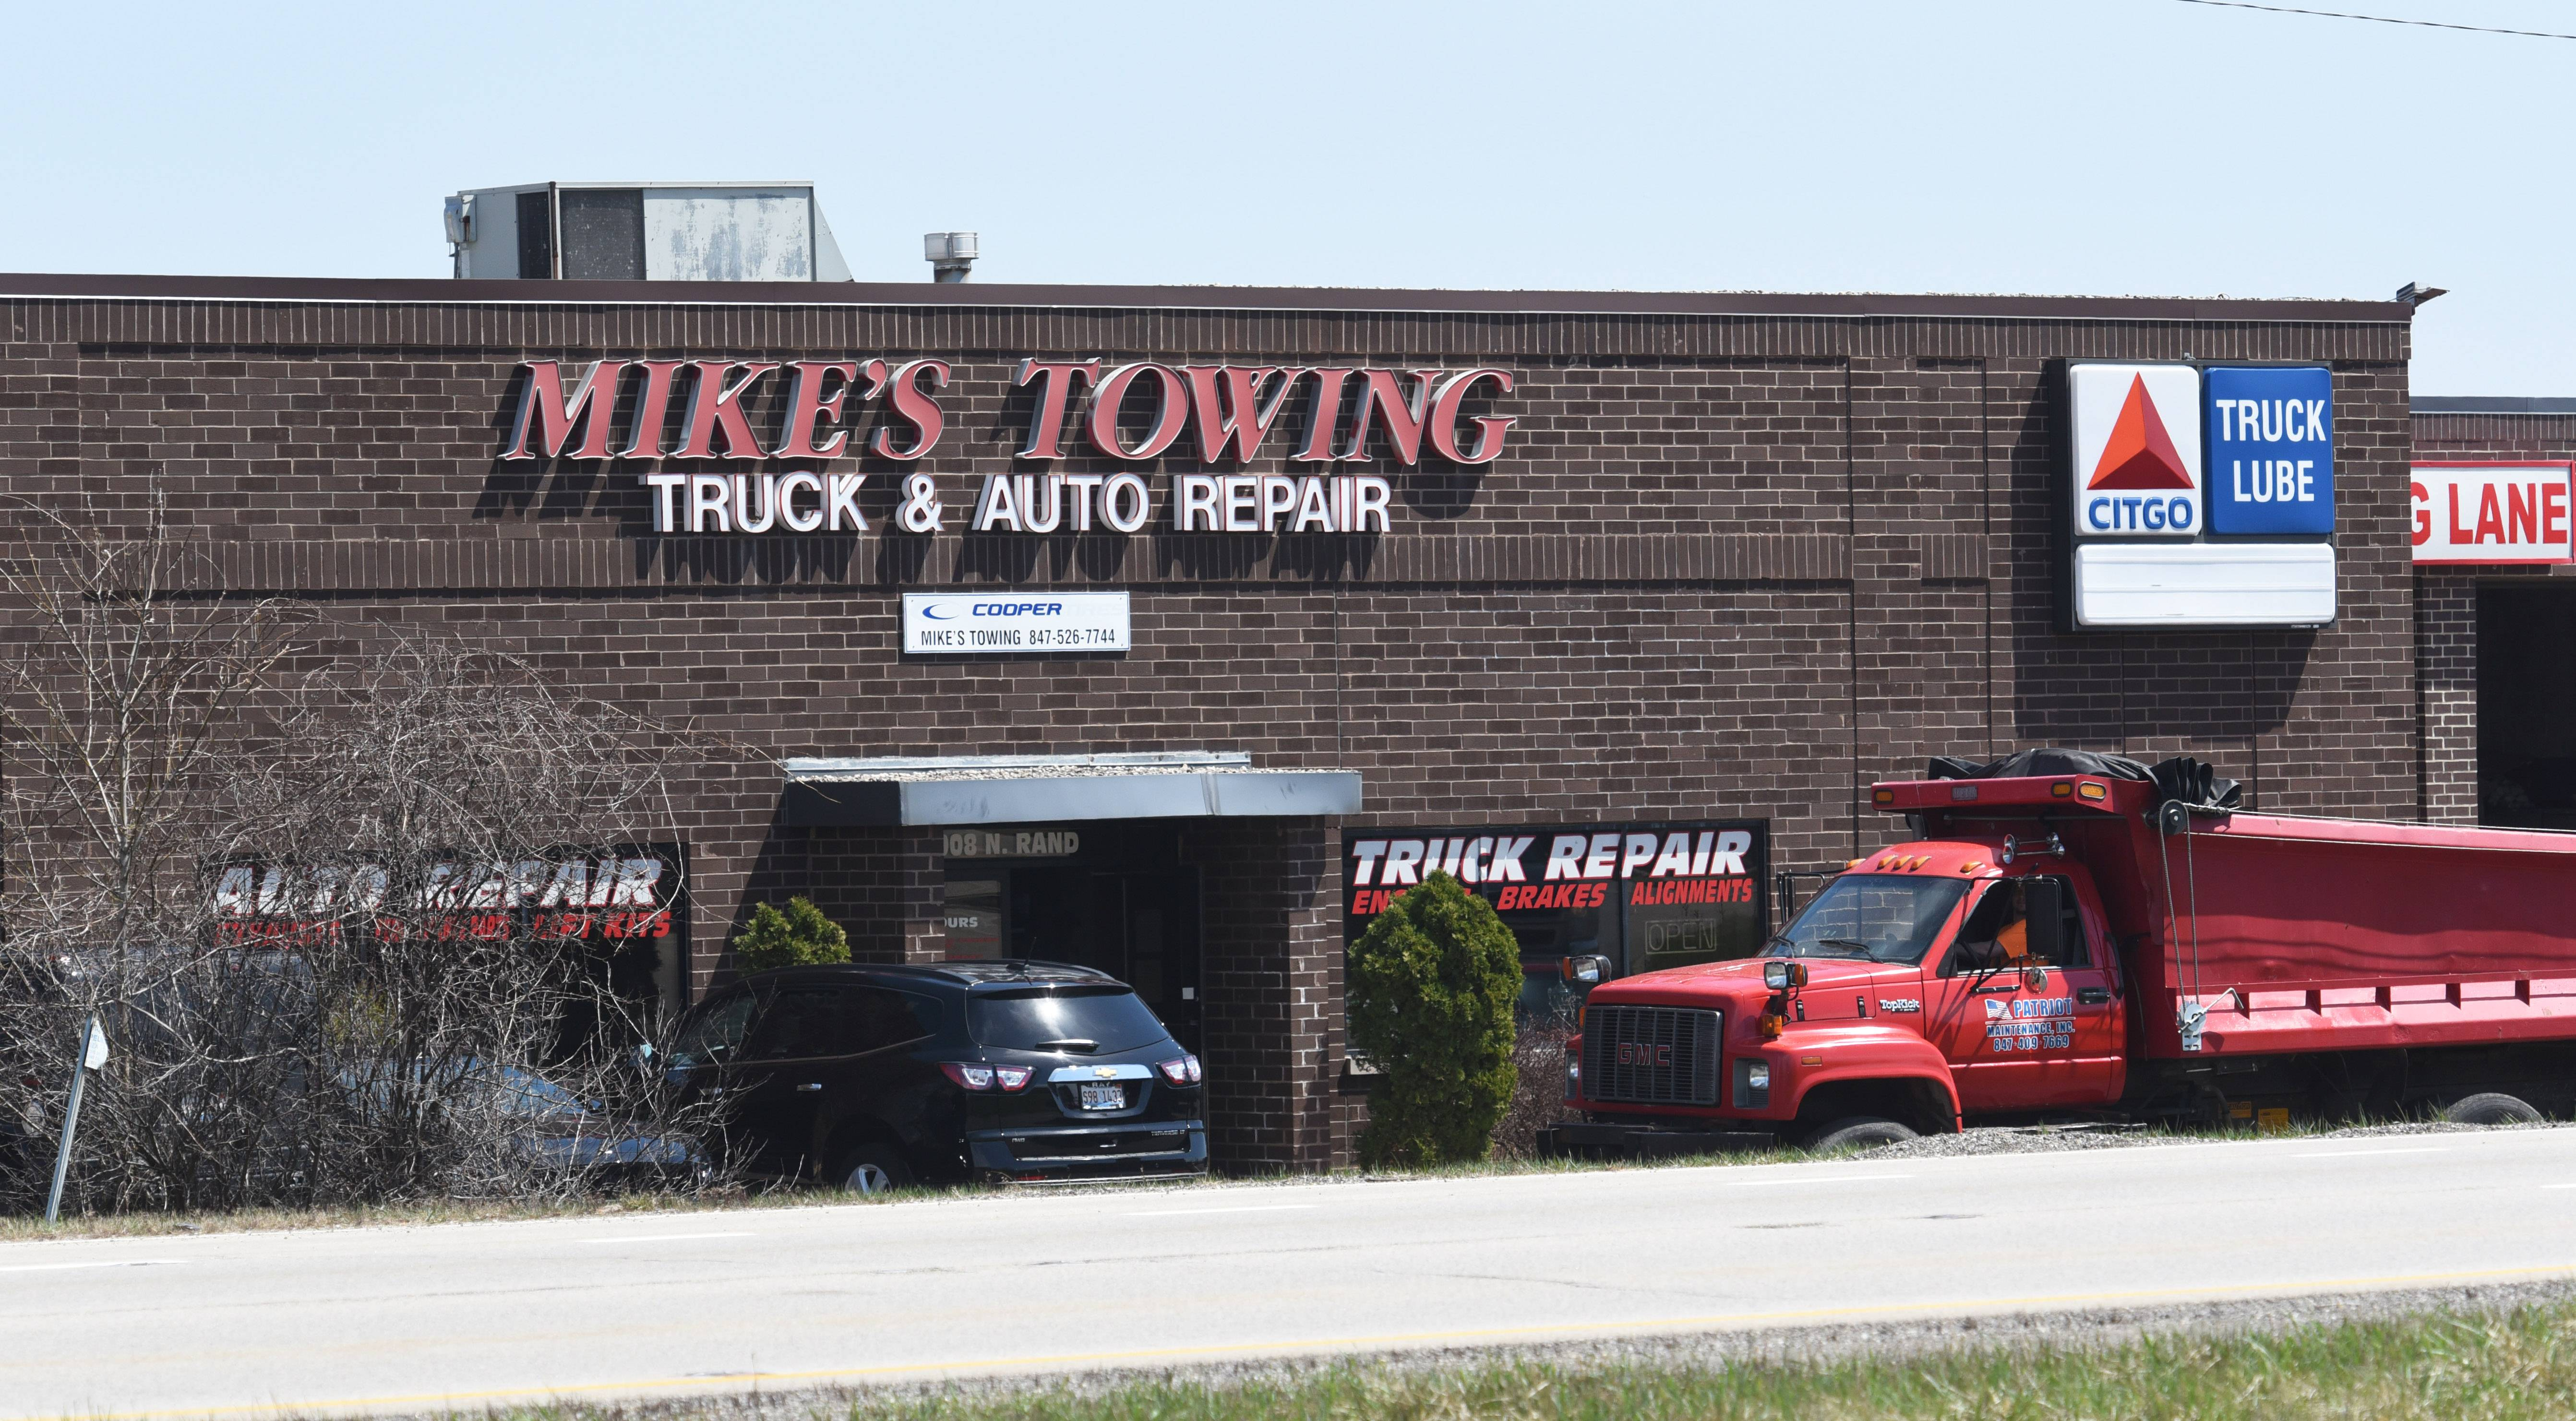 Some Island Lake trustees are trying to prevent Police Chief Anthony Sciarrone from giving an exclusive towing contract to Mike's Towing of Wauconda.